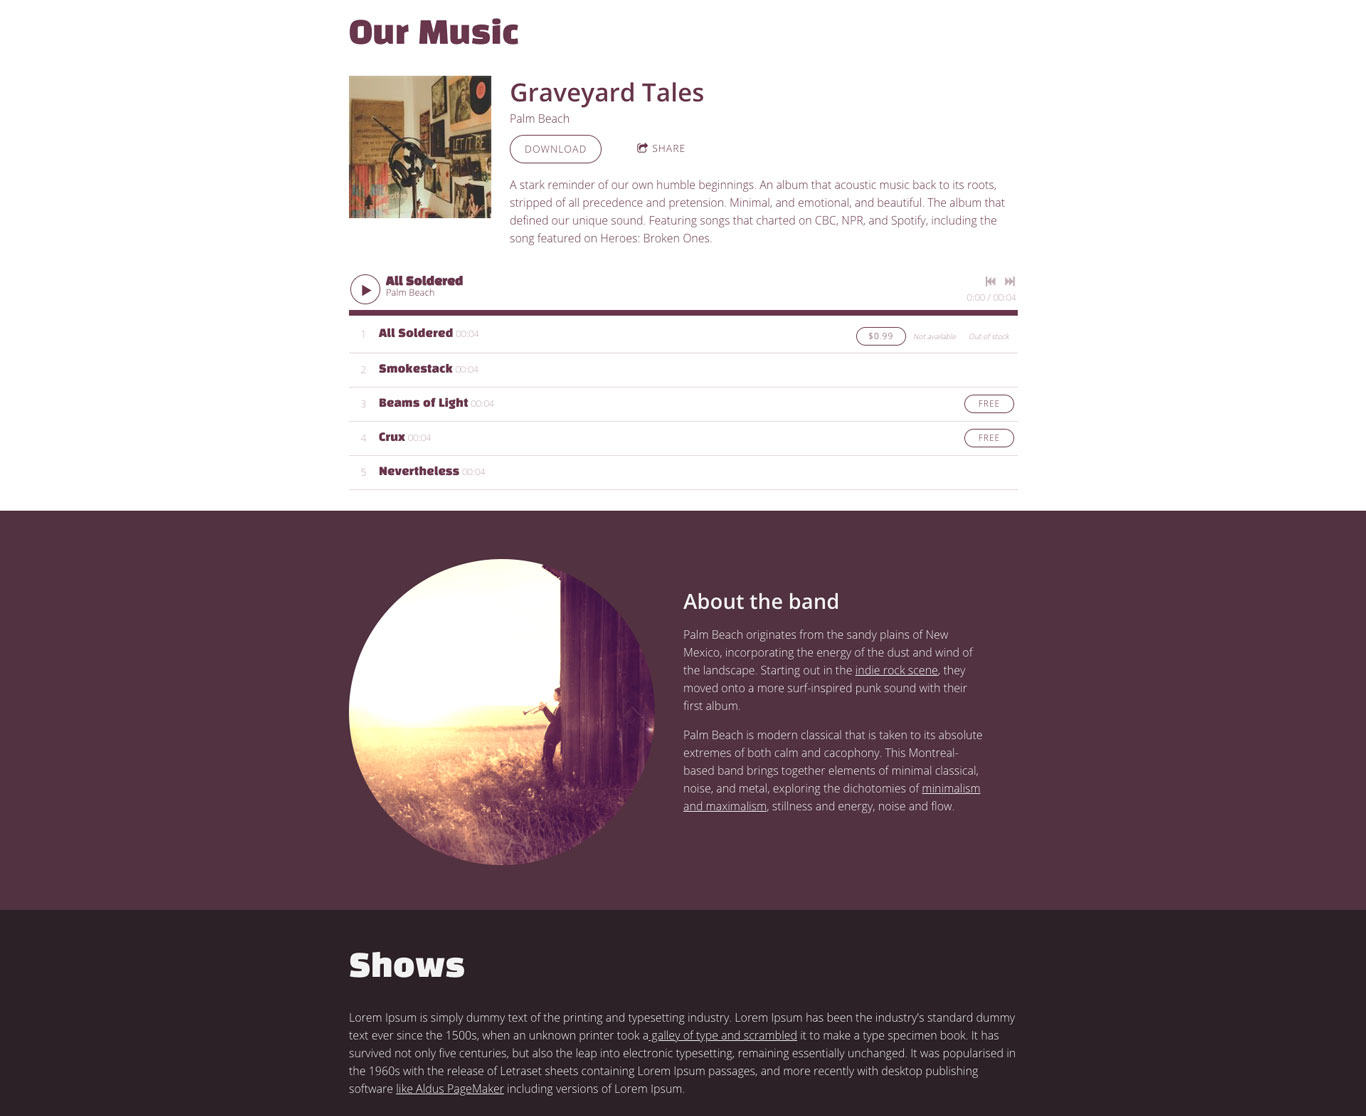 Music website template example with sections